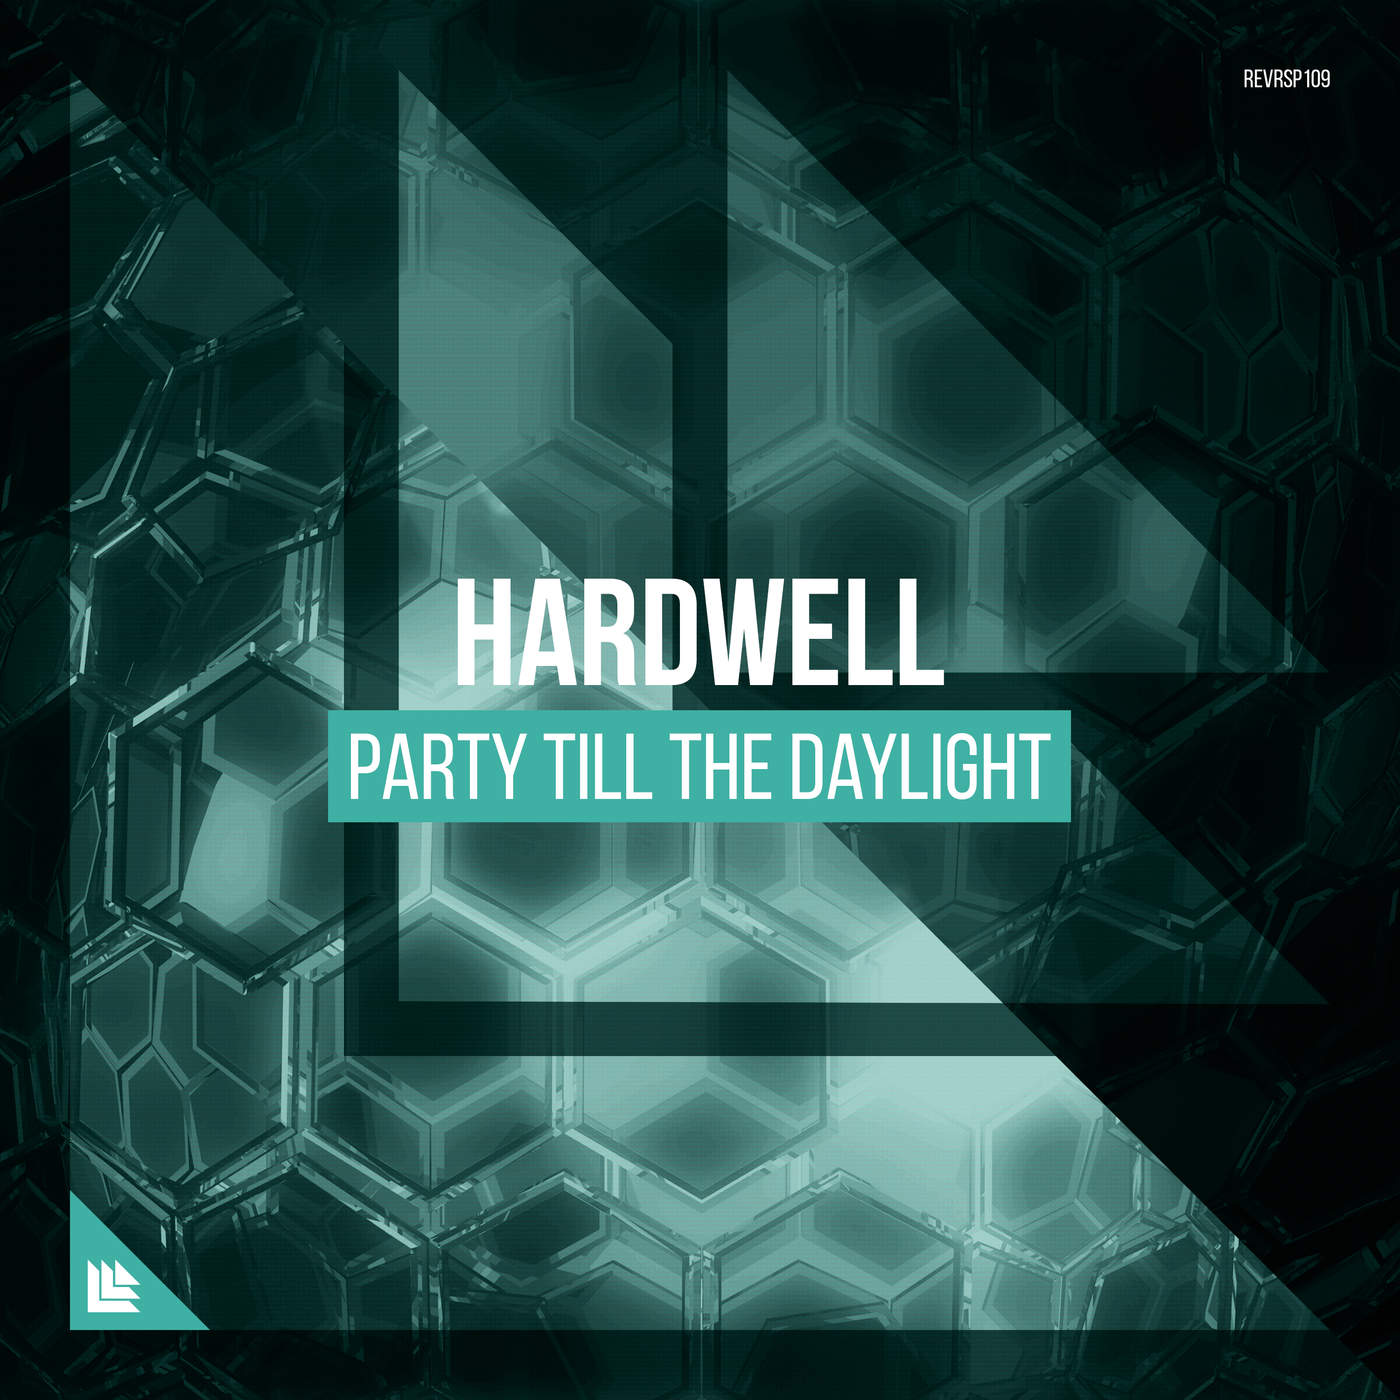 hardwell-party-till-the-daylight